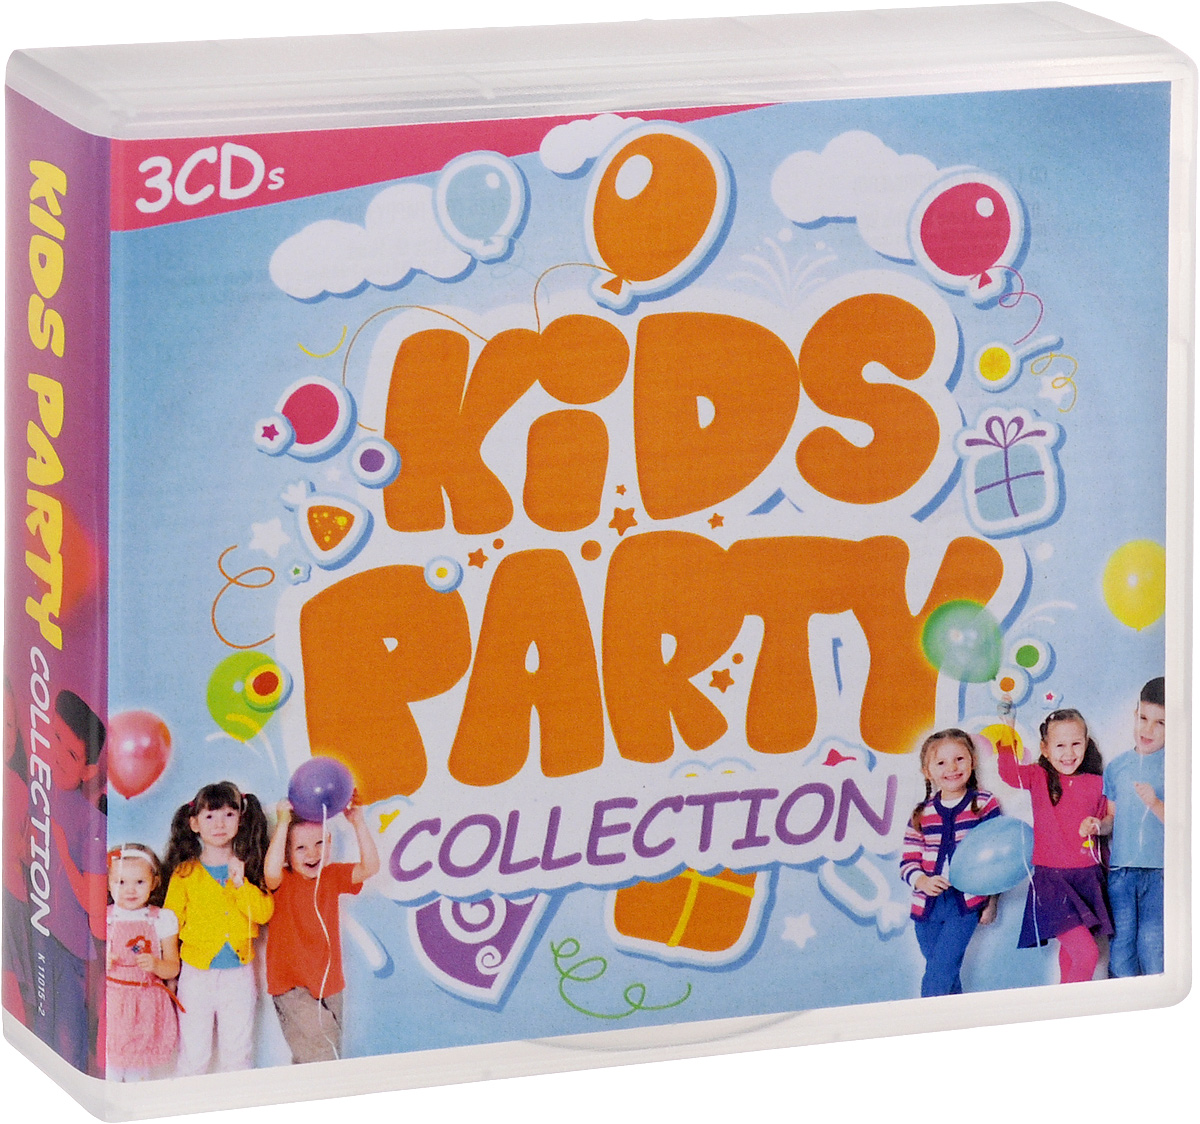 Chrimebo,The Happy Kids,Manfred Kessler Kids Party Collection (3 CD) spare the kids